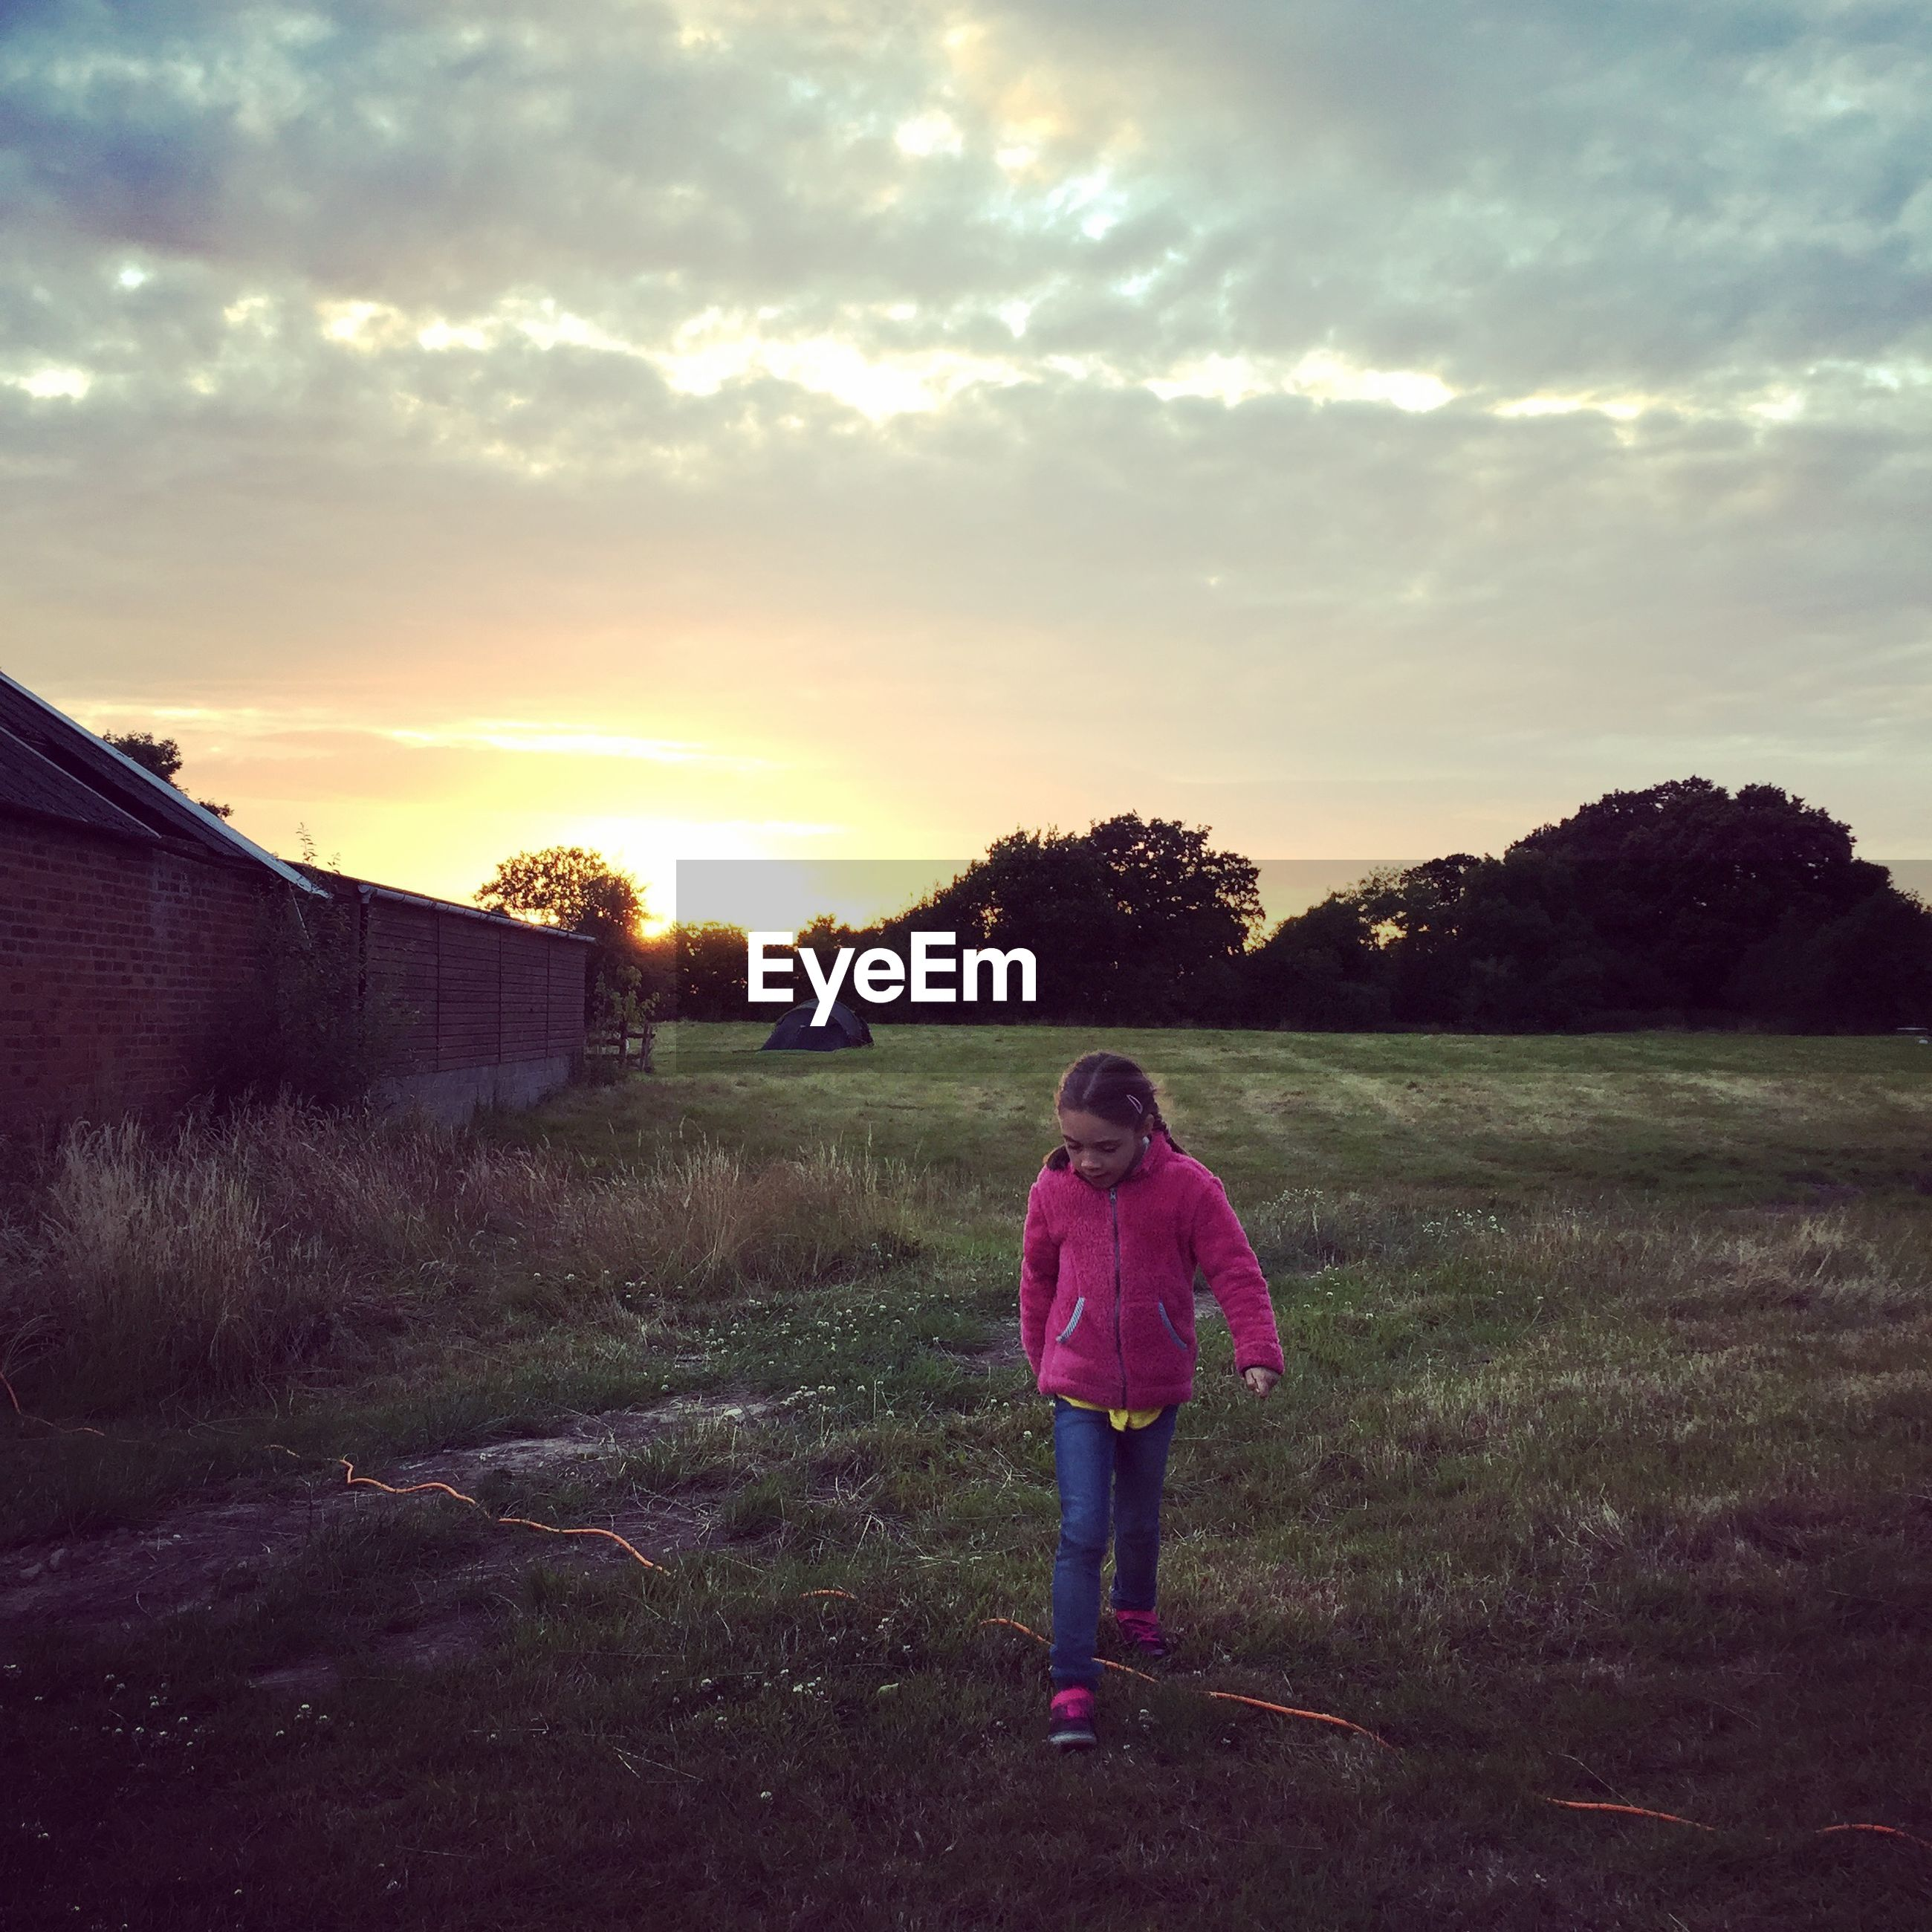 Girl walking on grassy field against cloudy sky during sunset